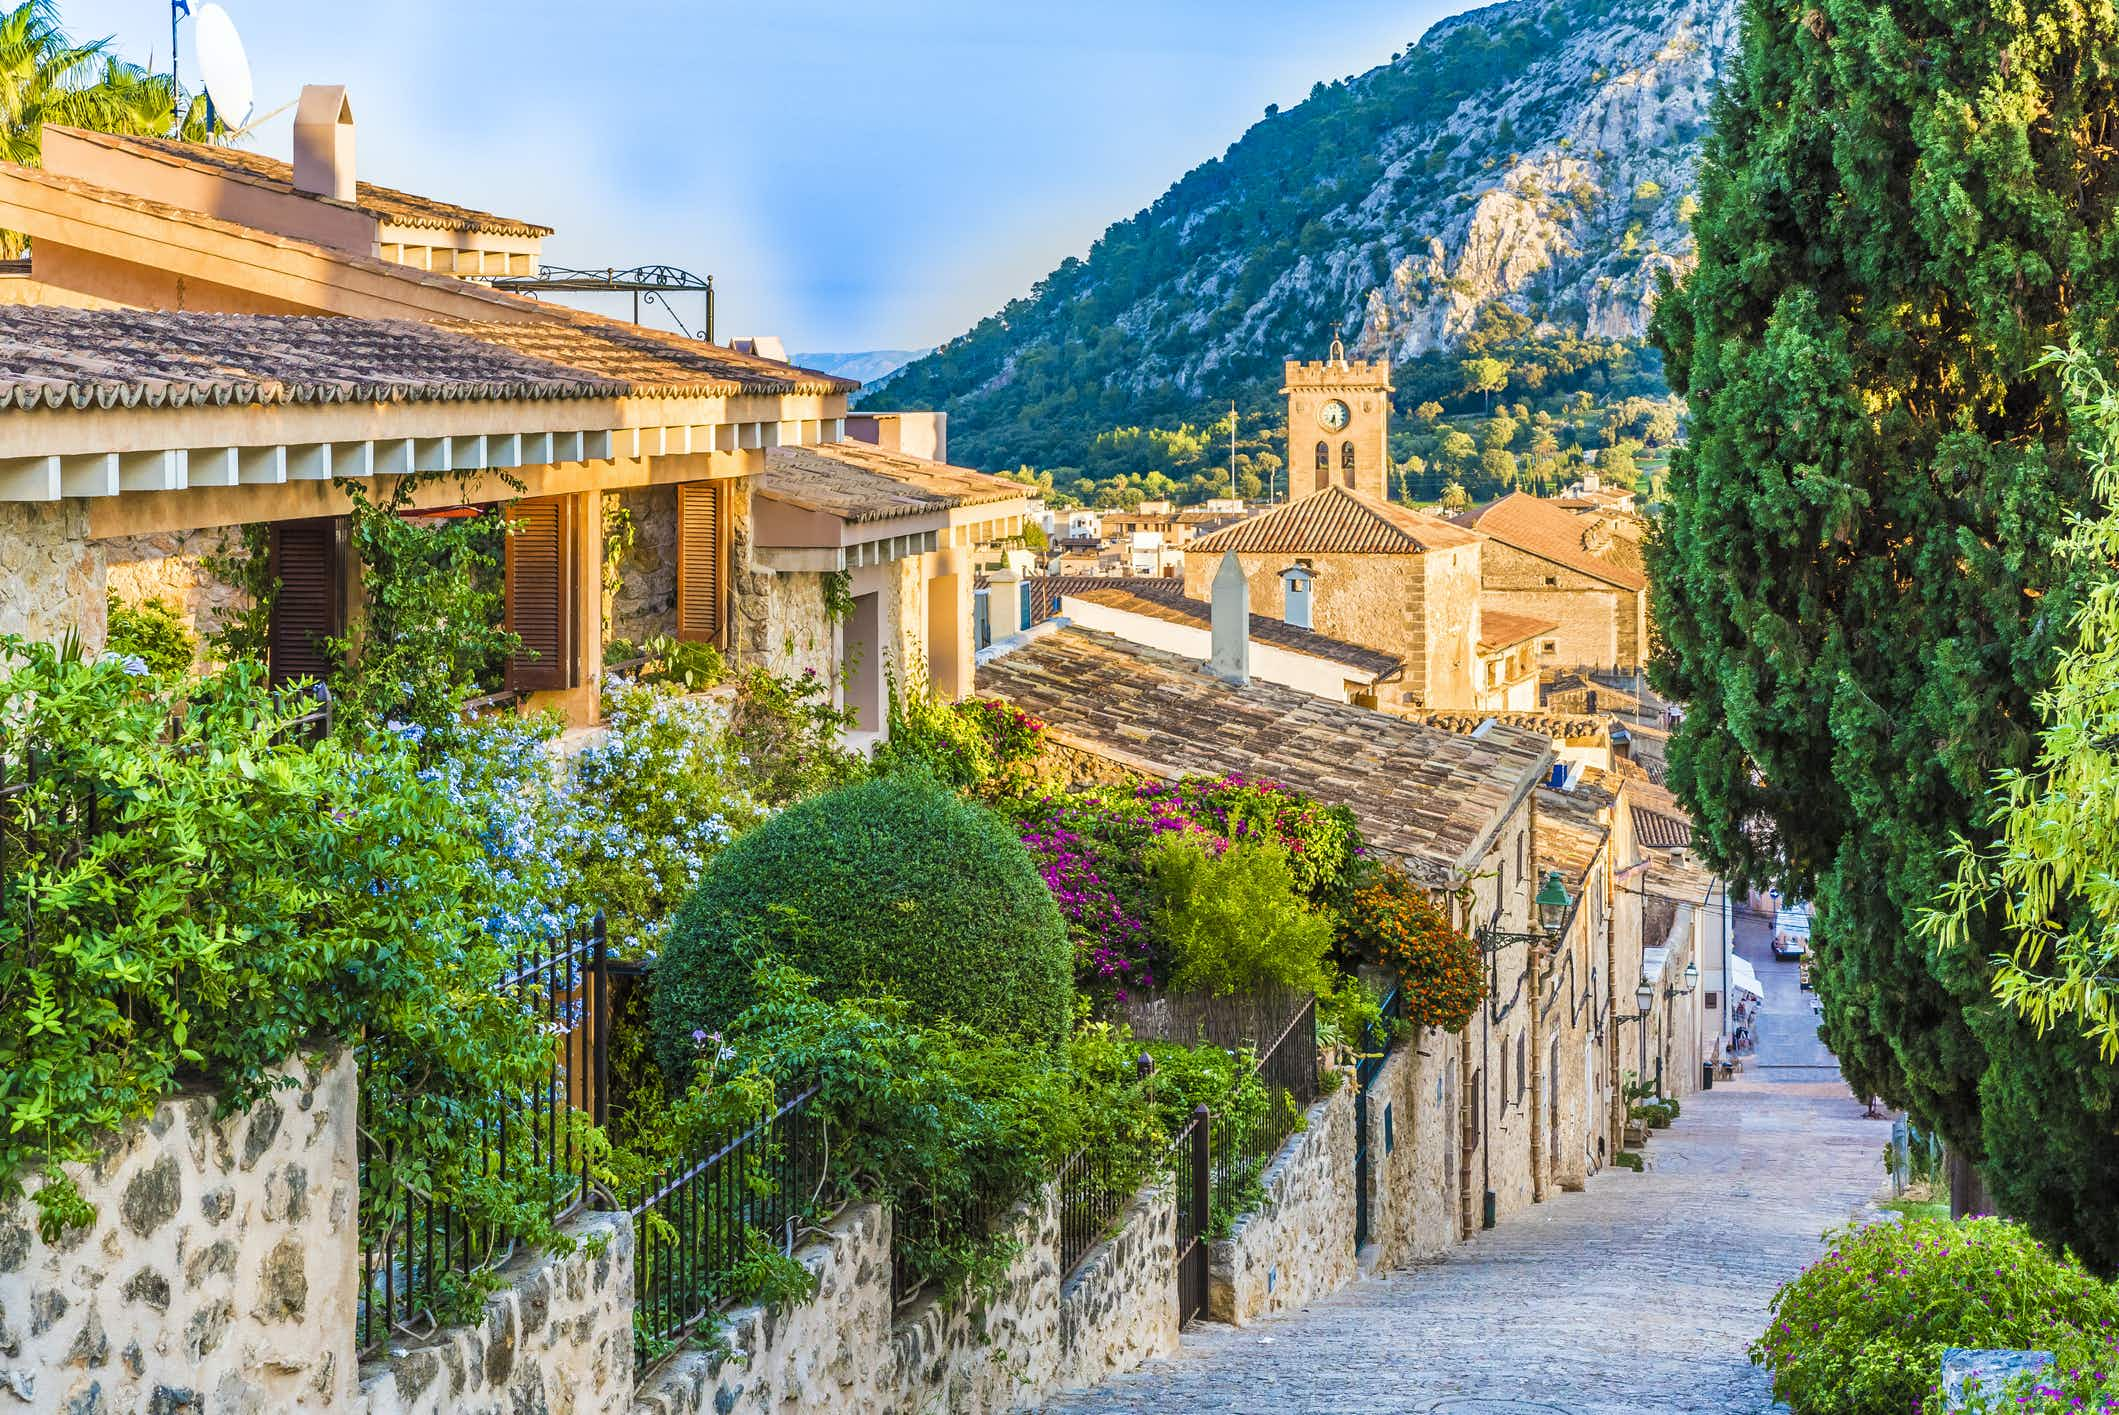 Spain adds 15 destinations to its 'most beautiful villages' list